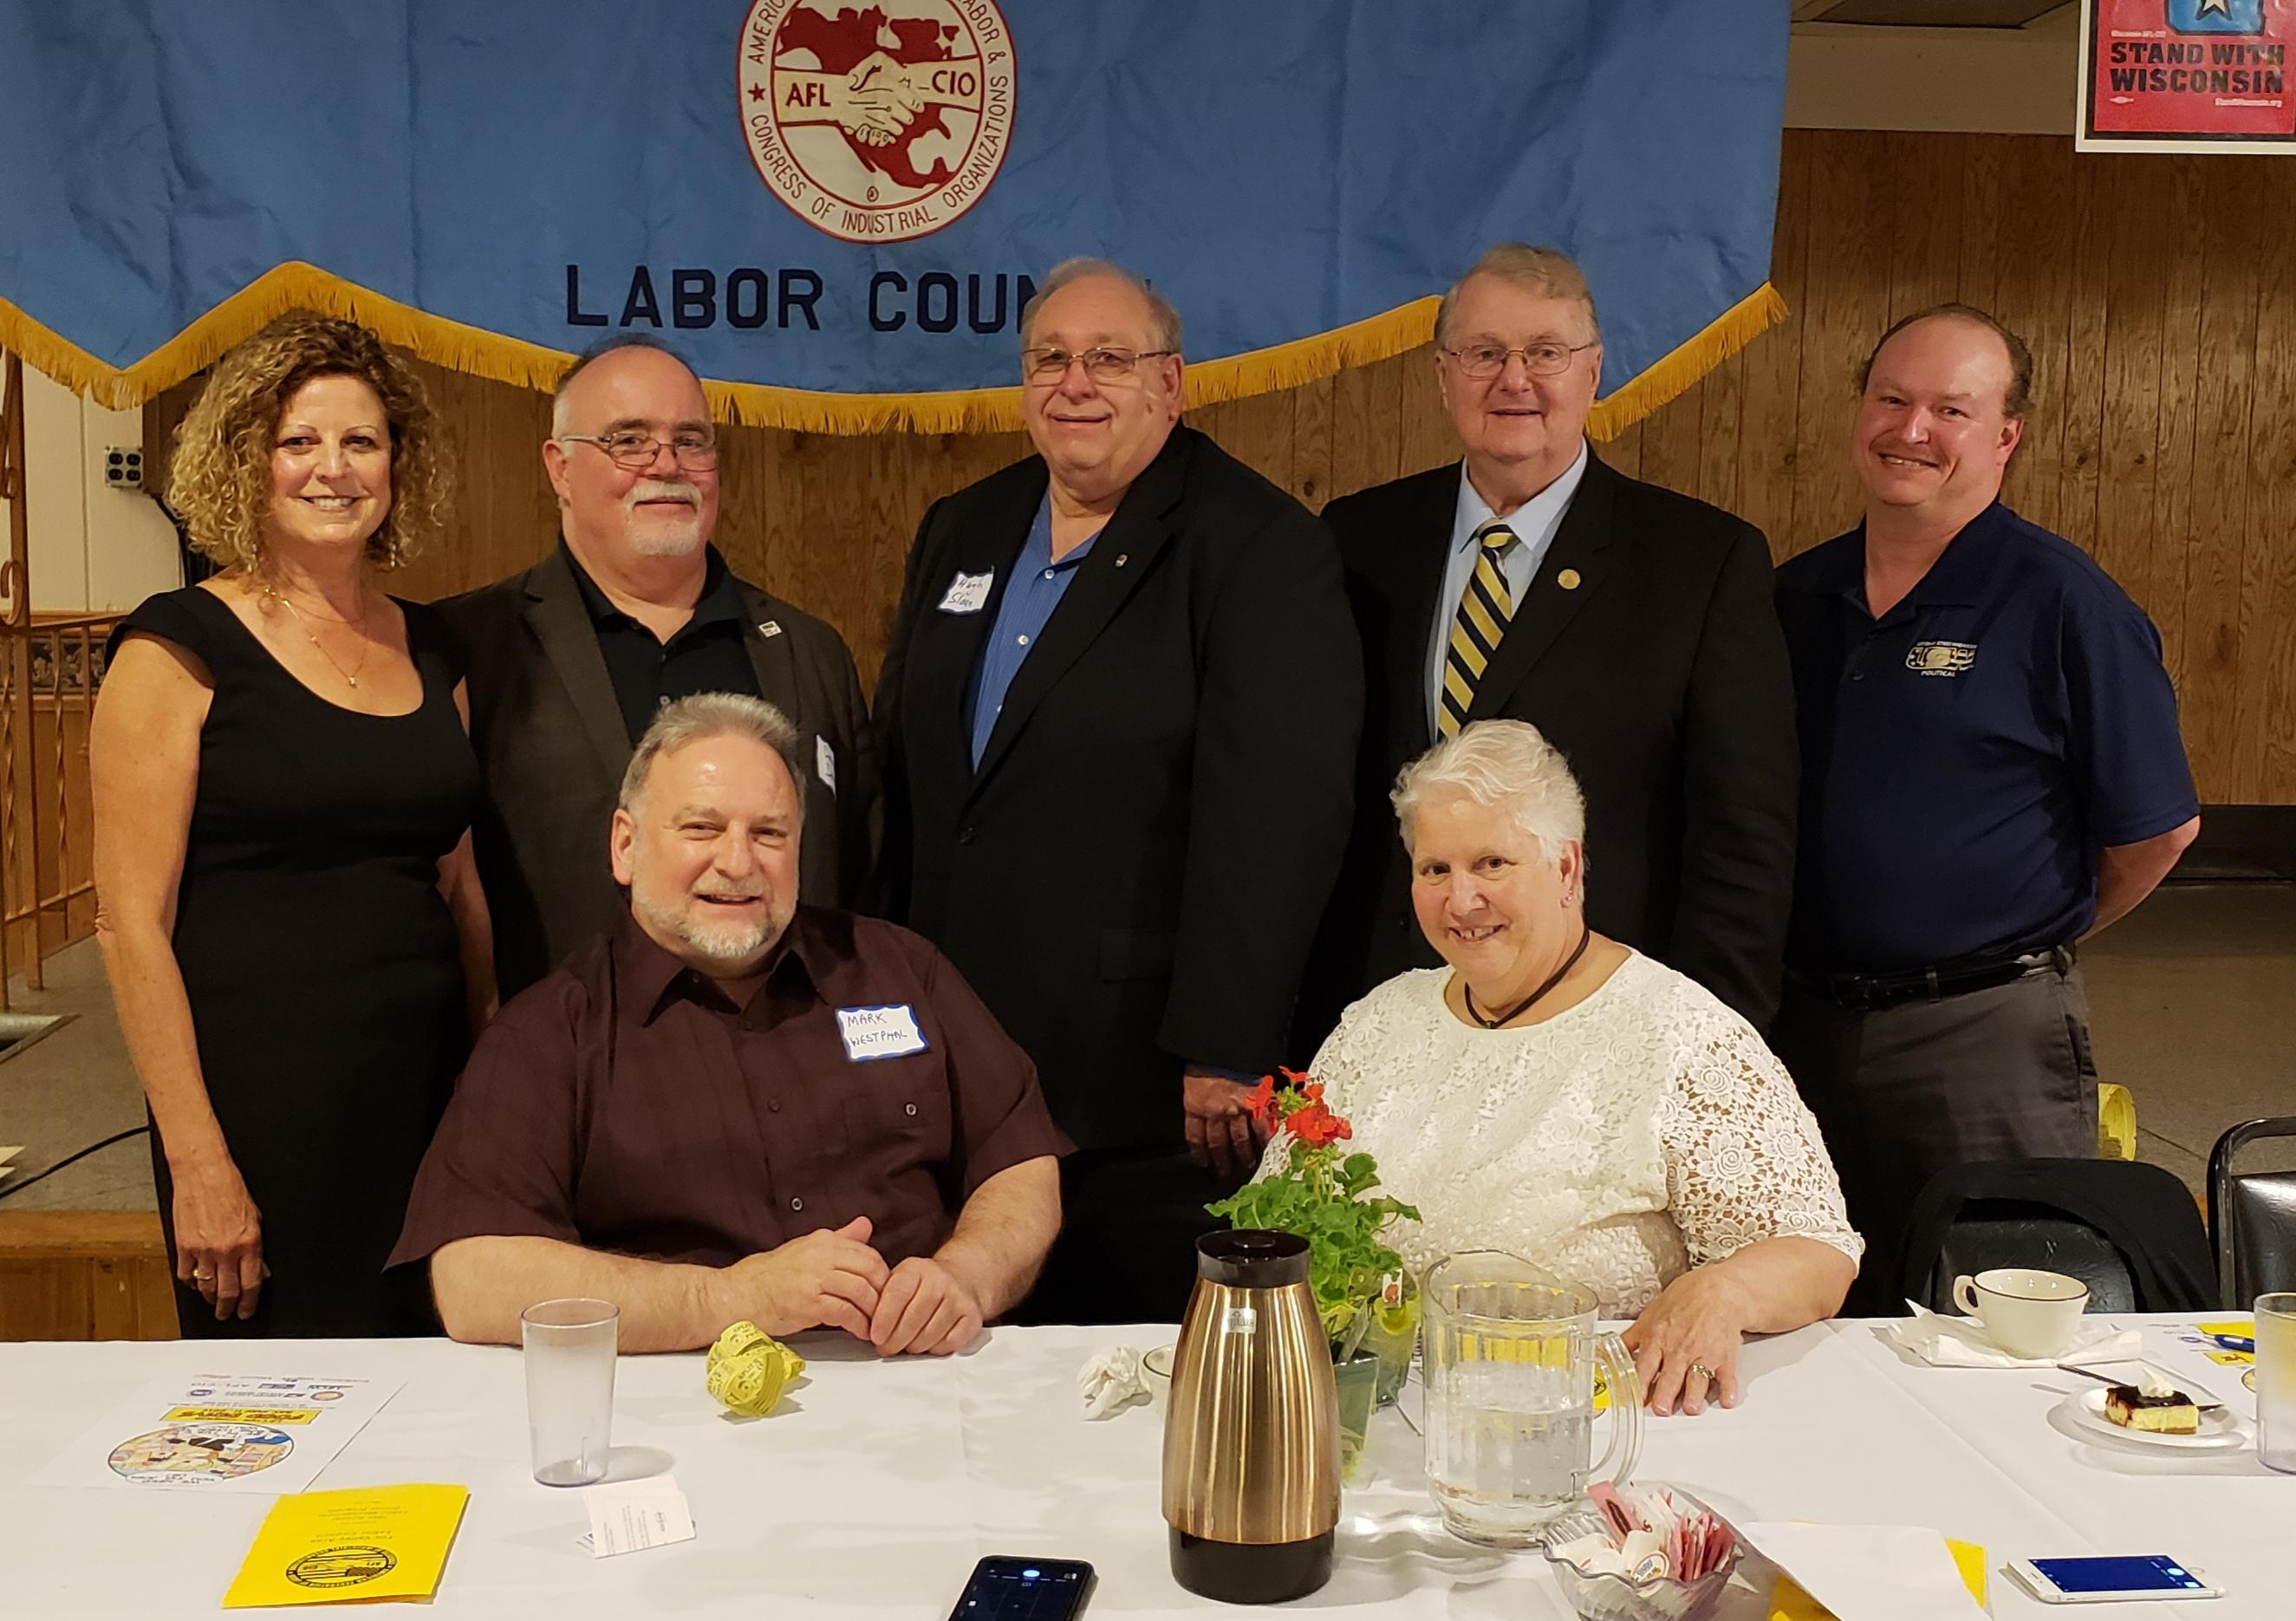 Fox Valley Area Labor Council, 70th Annual Labor Managemennt Dinner 2019